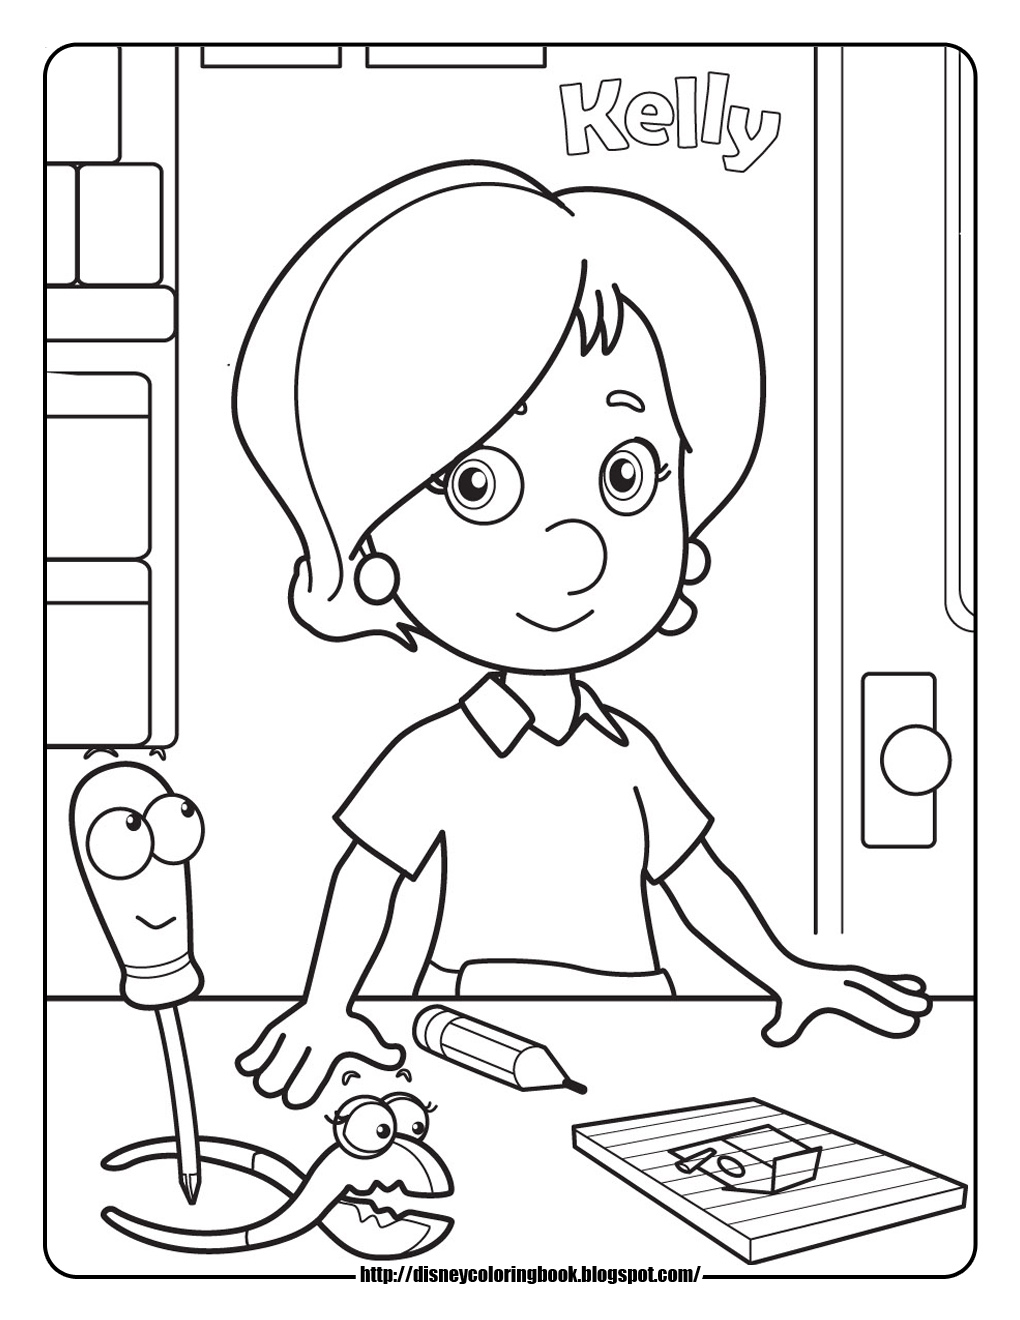 handymanny coloring pages - photo#22